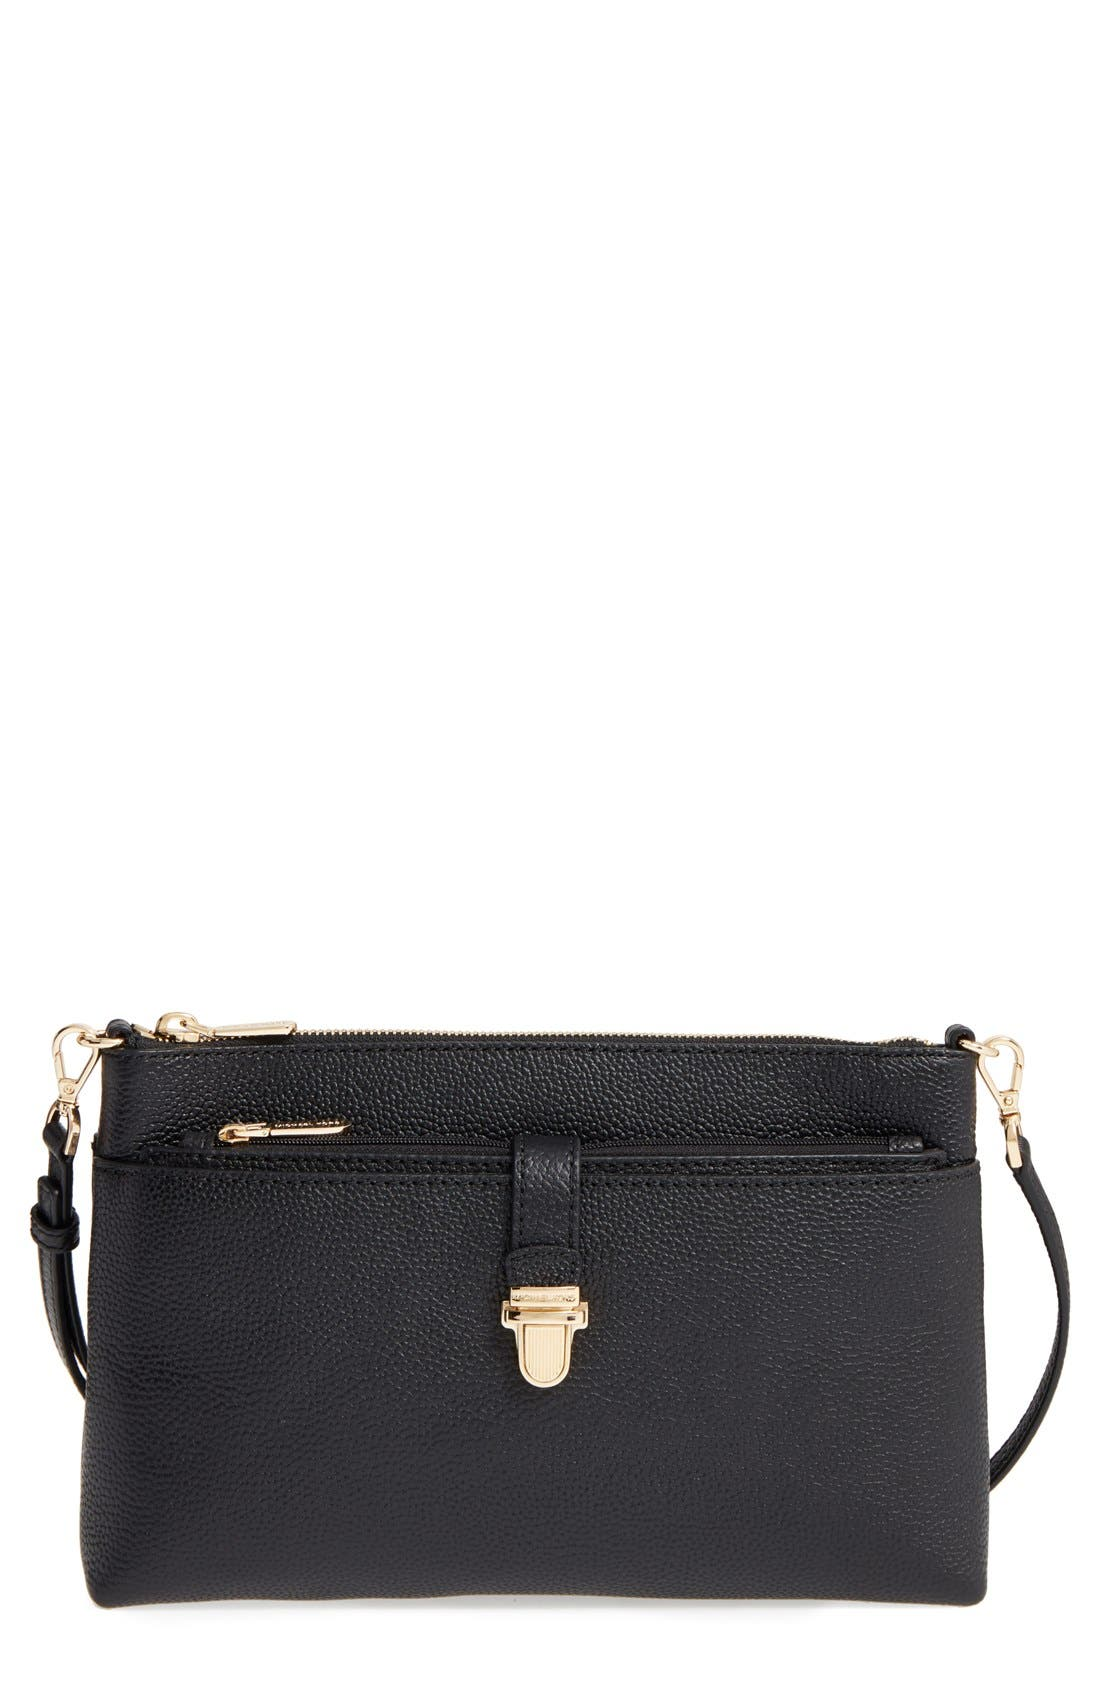 Large Mercer Leather Crossbody Bag,                             Main thumbnail 1, color,                             Black/ Gold